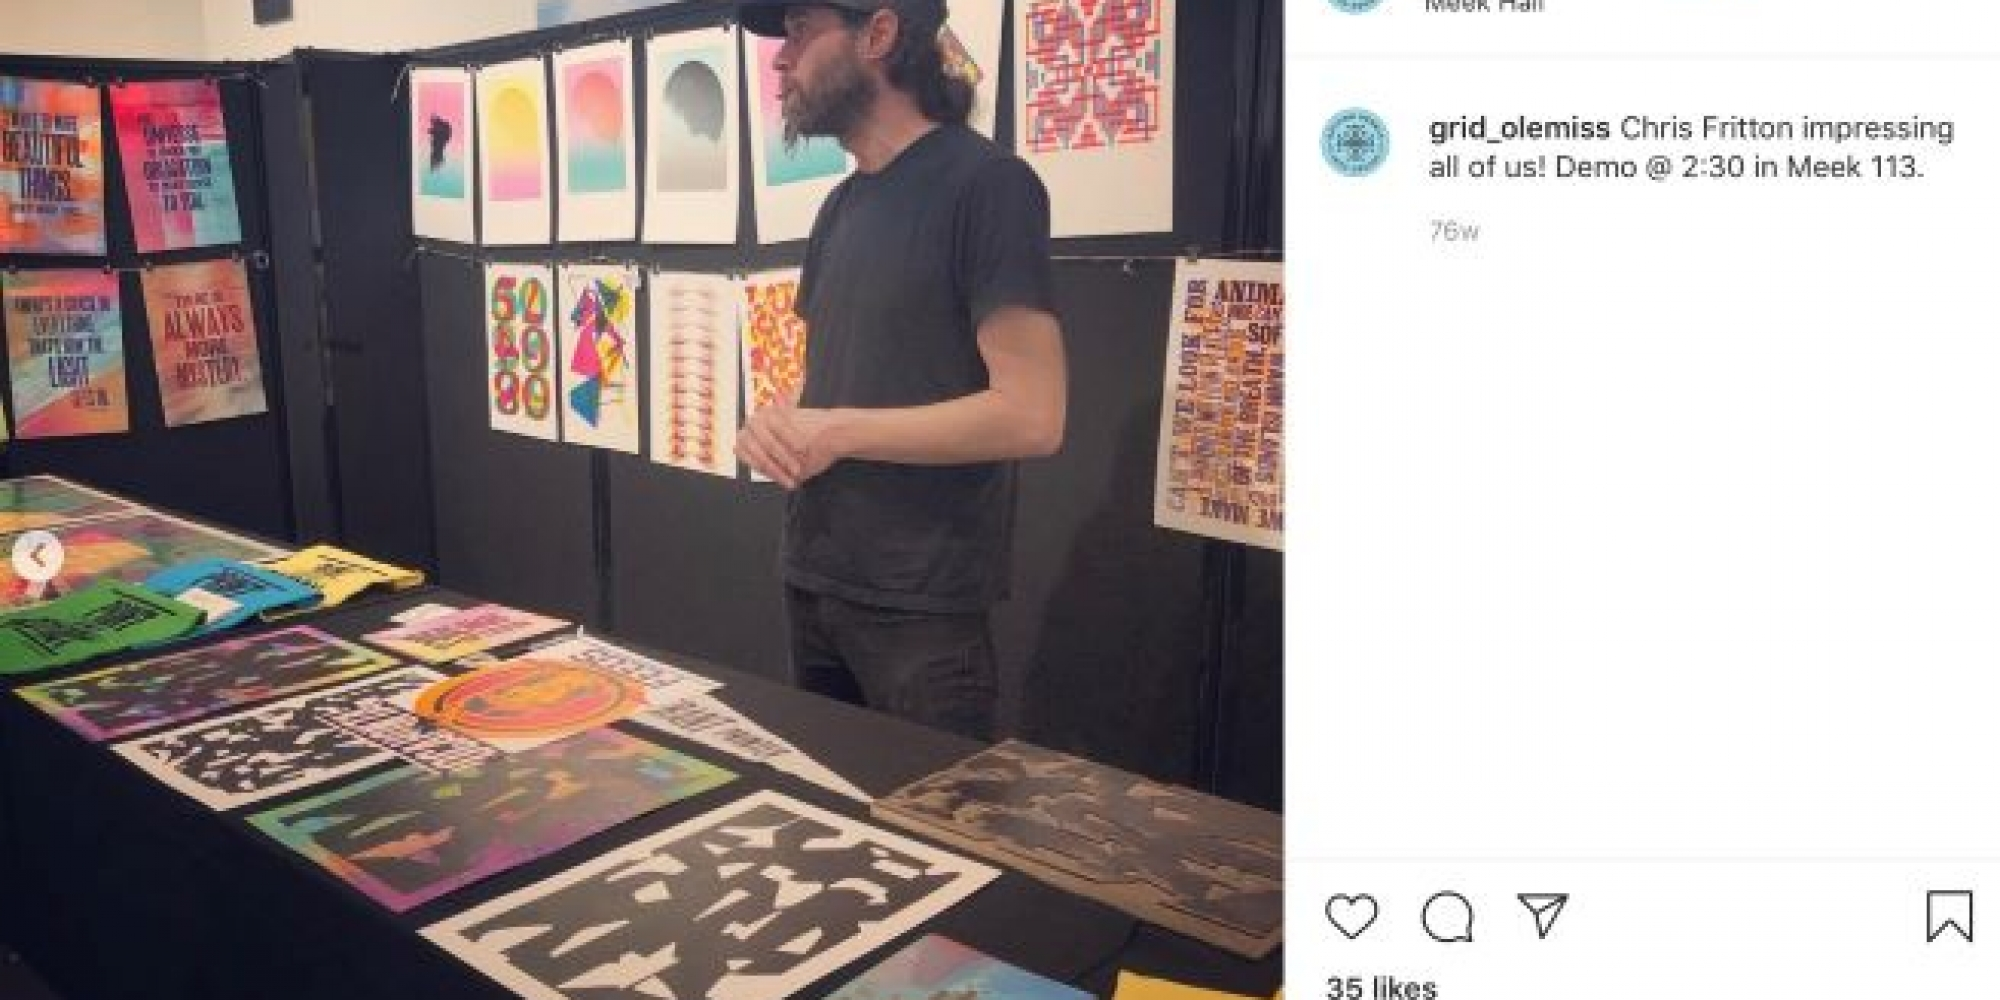 Grid Instagram post featuring Chris Fritton giving a demo of print pieces.